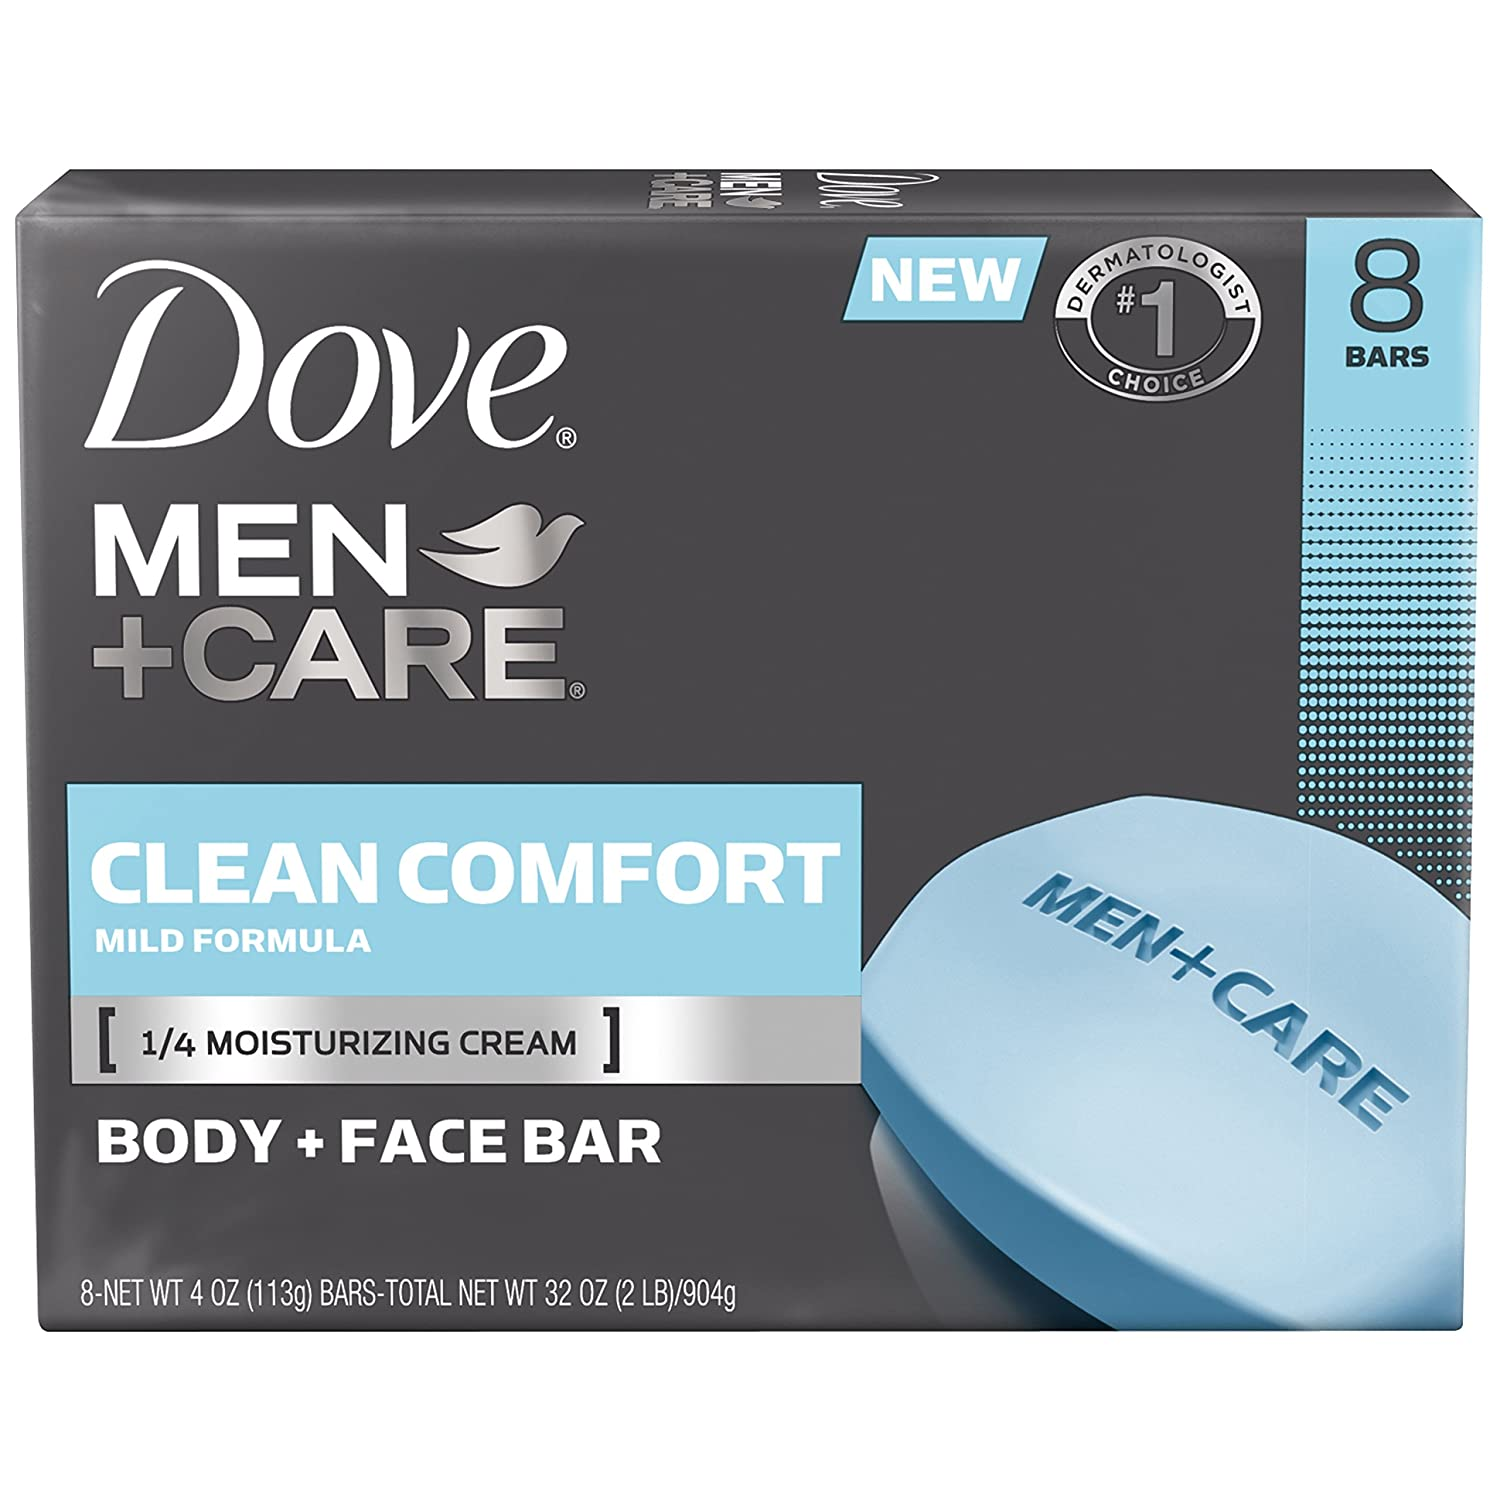 Dove Men + Care Body and Face Bar 8 Piece, Clean Comfort, 4 Ounce